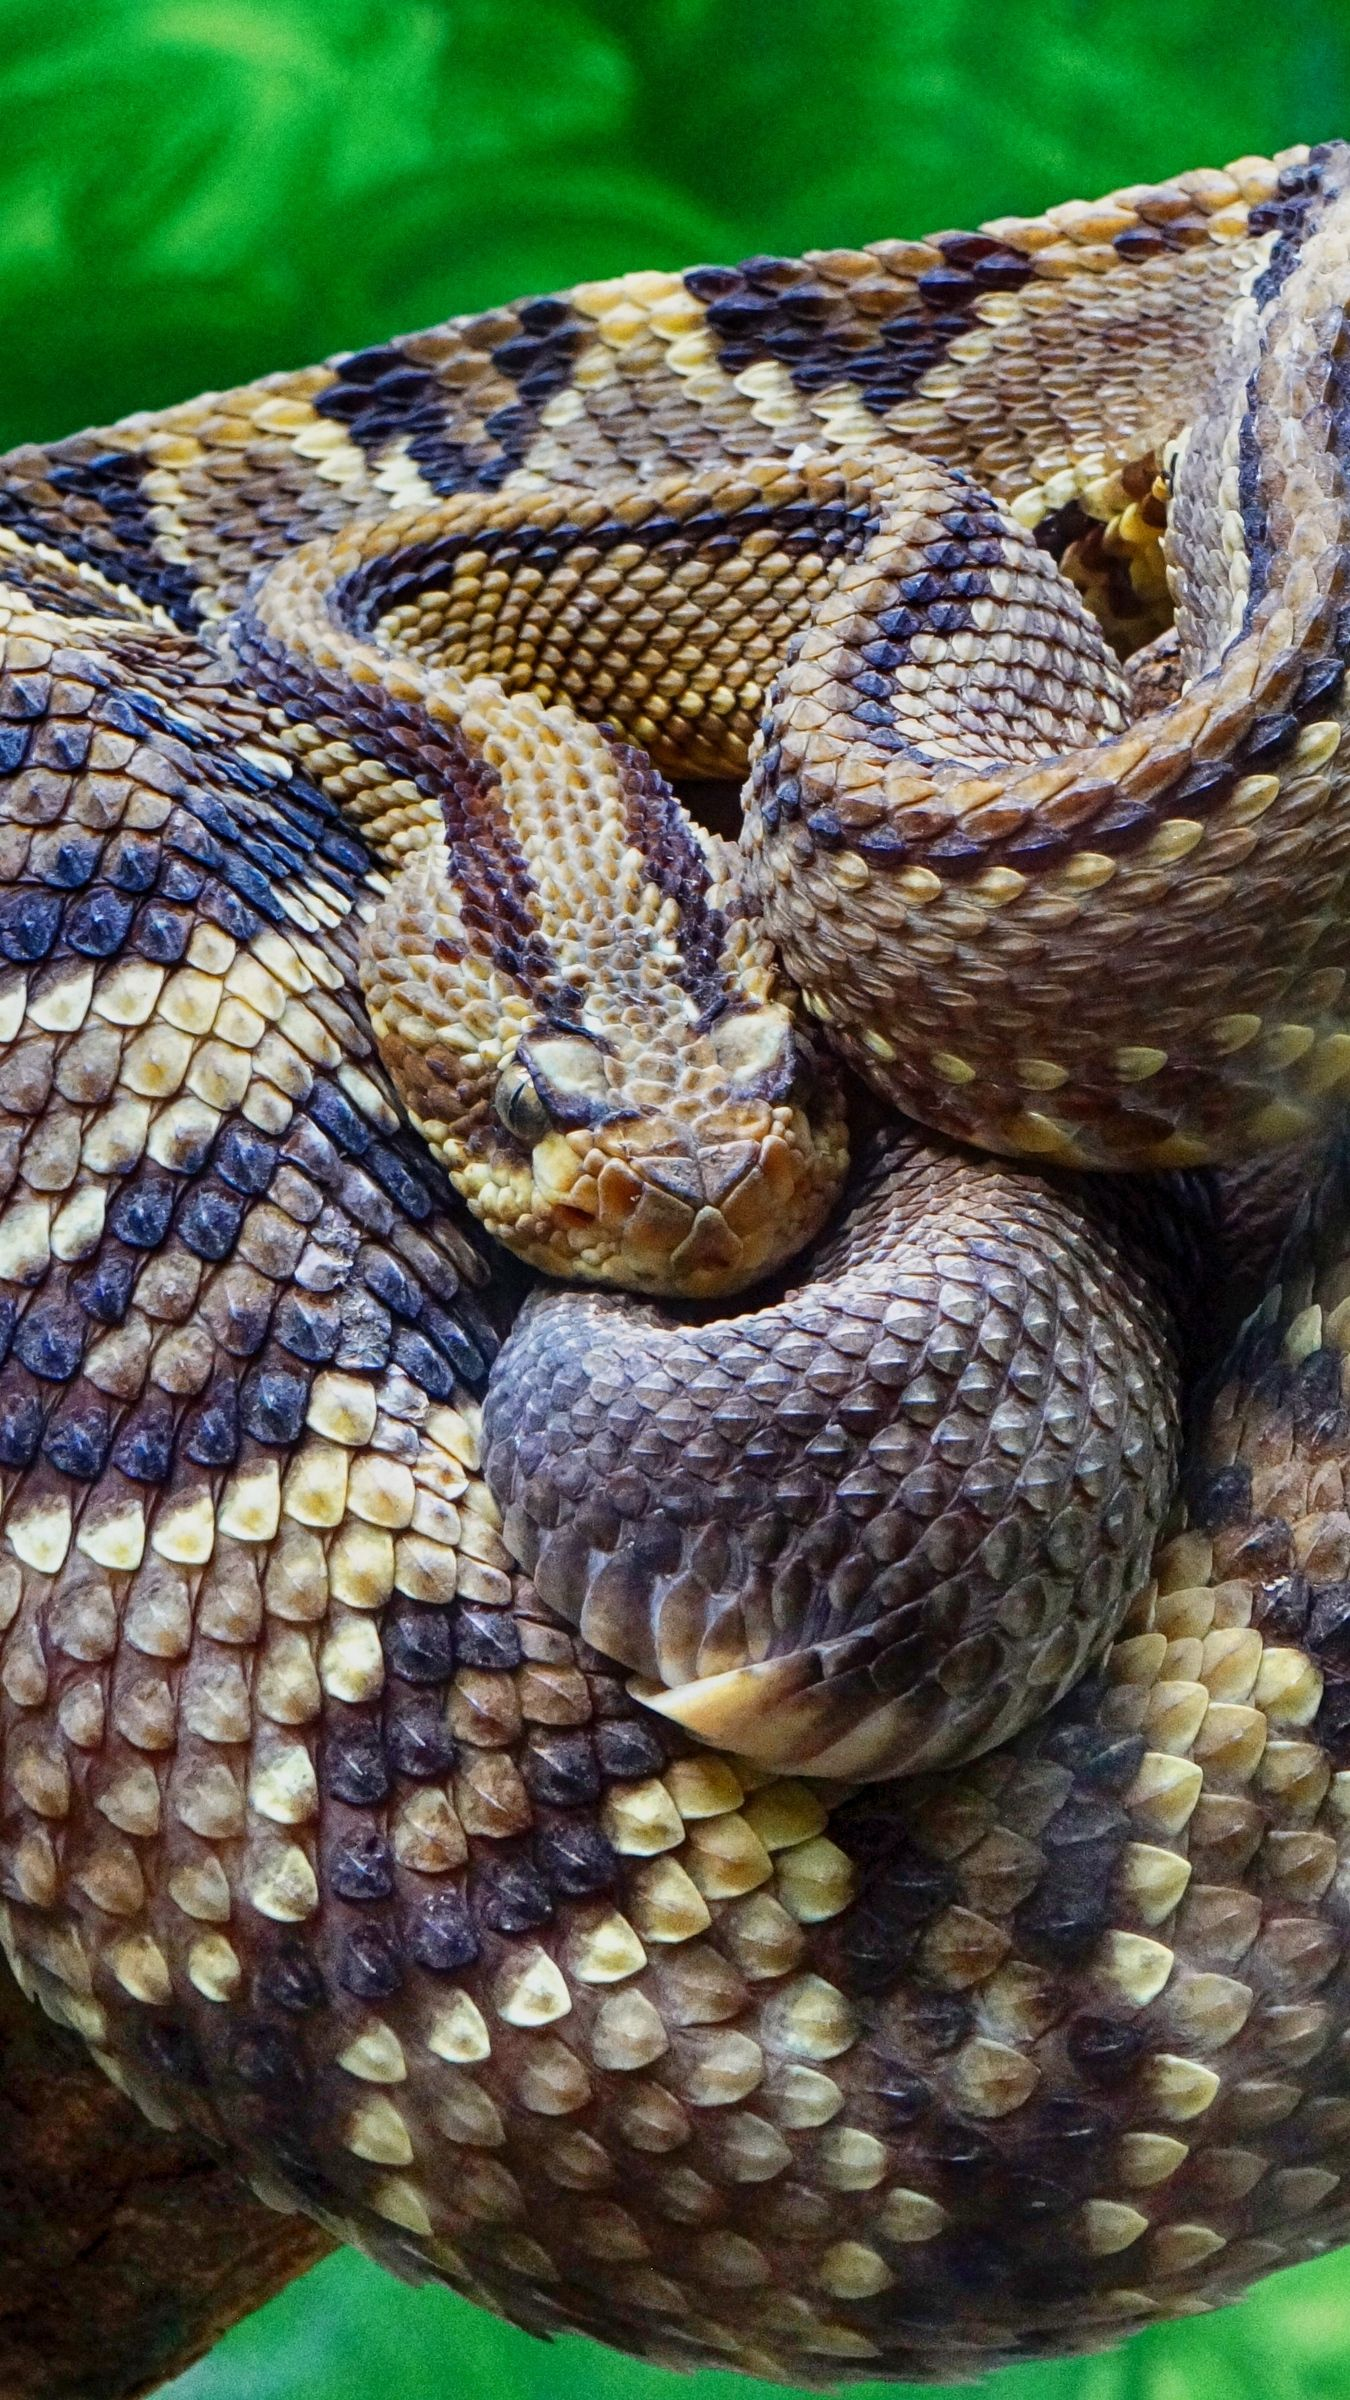 1350x2400 Download wallpaper 1350x2400 rattlesnake, snake, scales iphone 8+/7+ ...